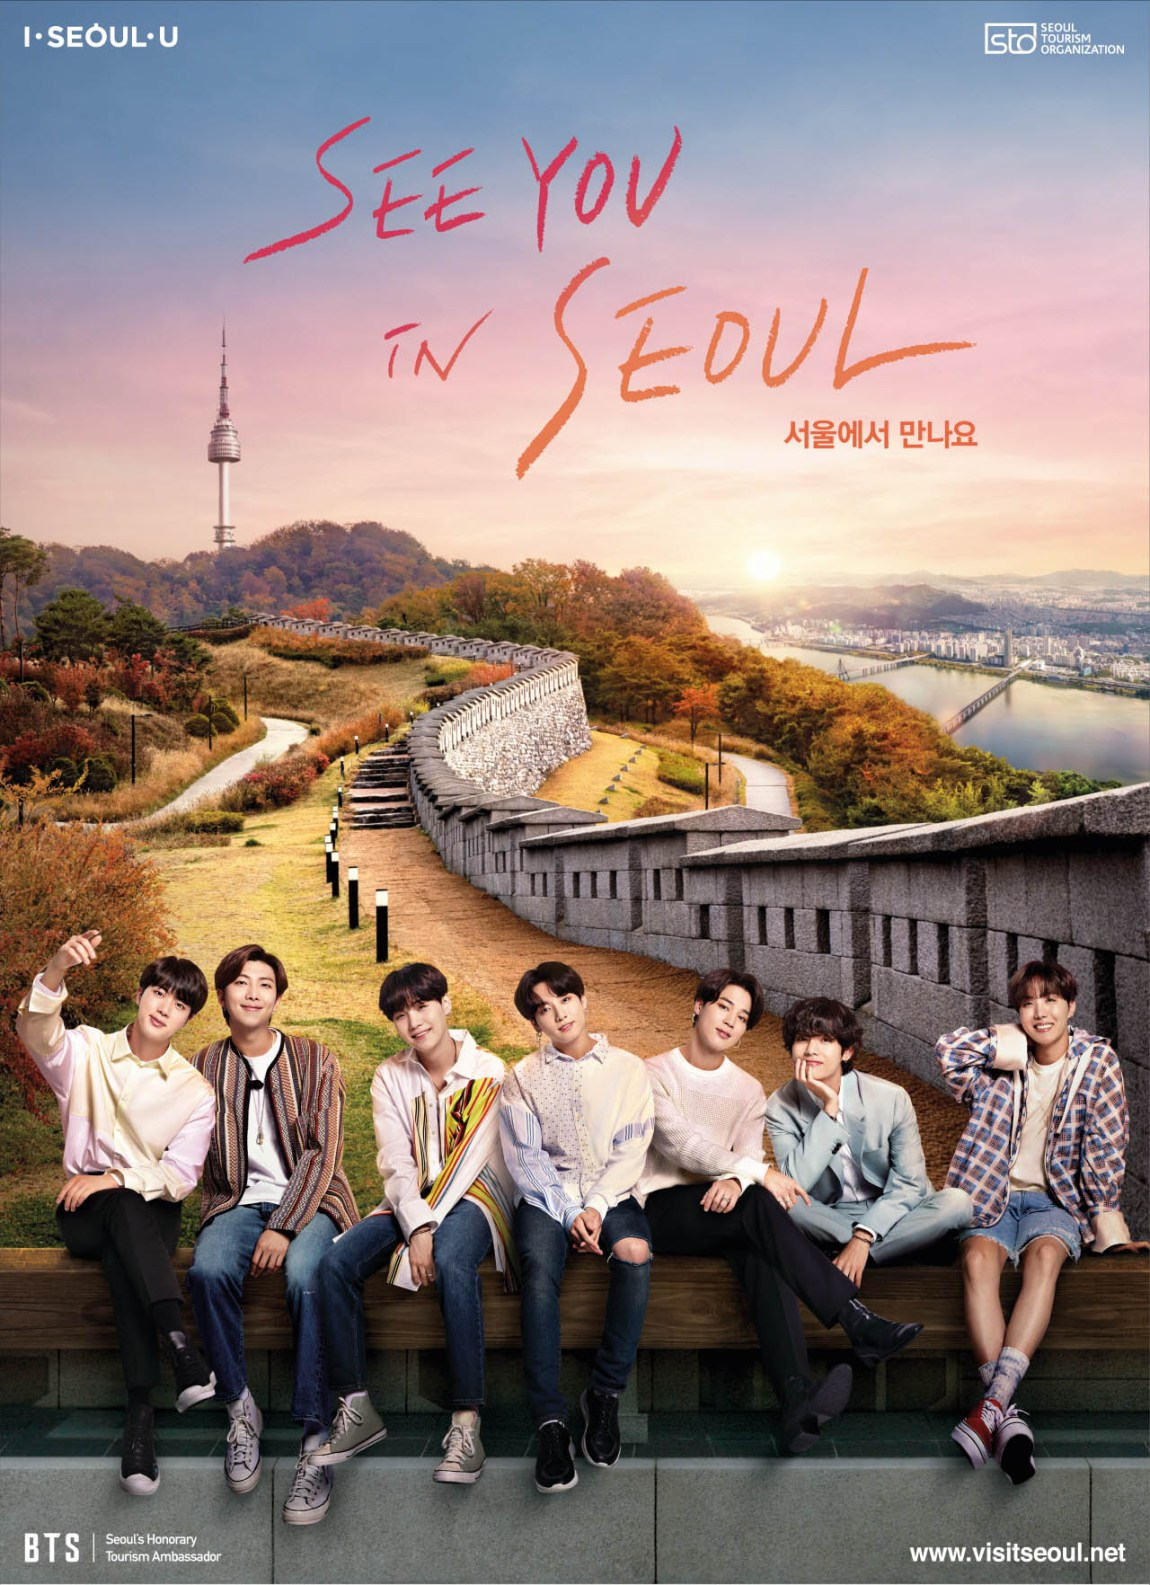 See you in Seoul: BTS promotes Seoul tourism